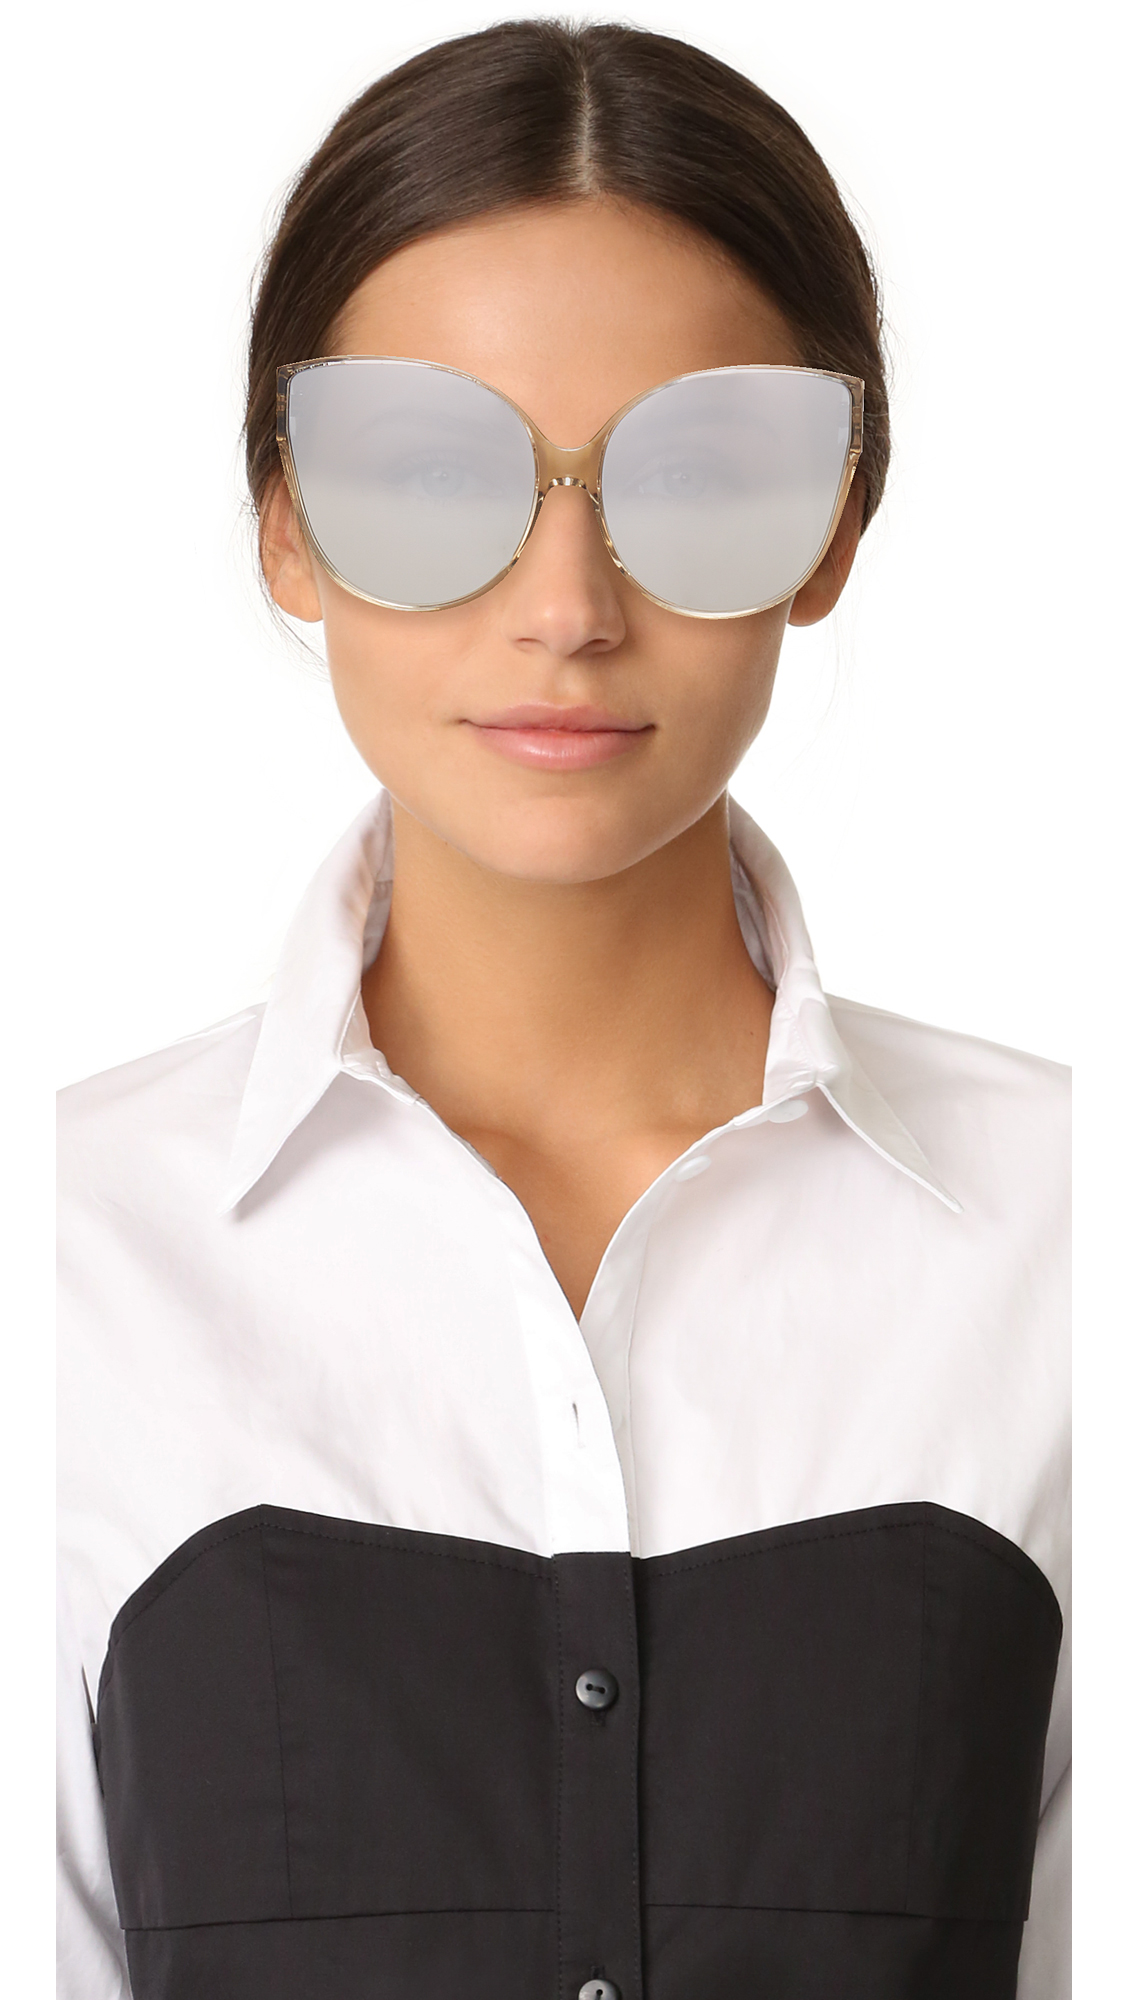 Oversized cat-eye sunglasses Linda Farrow 9WJX9VtC